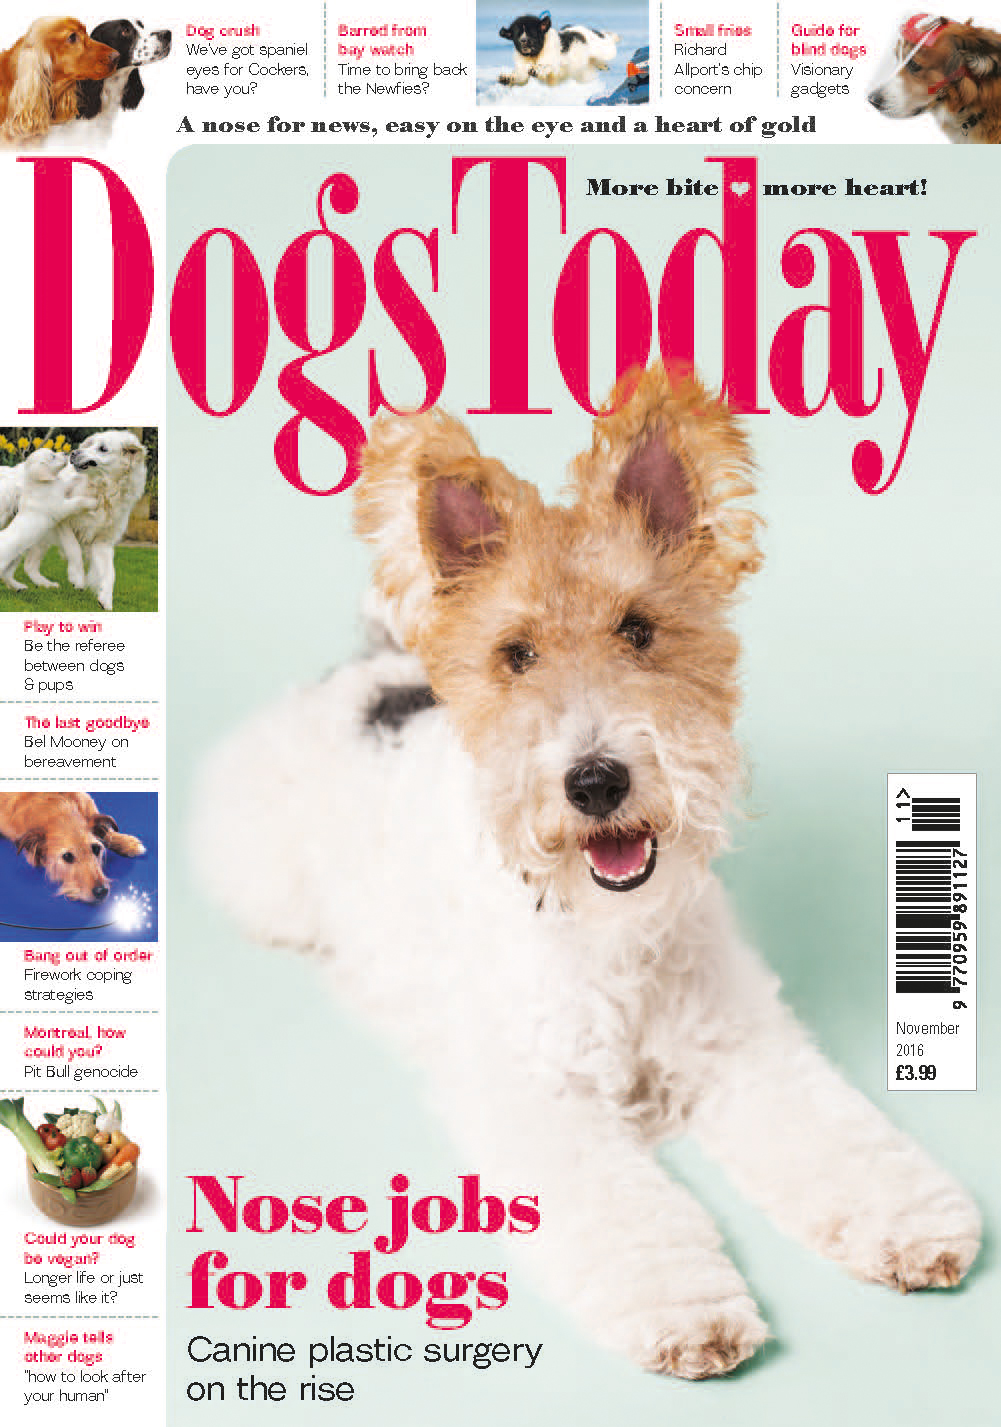 Dogs Today November 2016